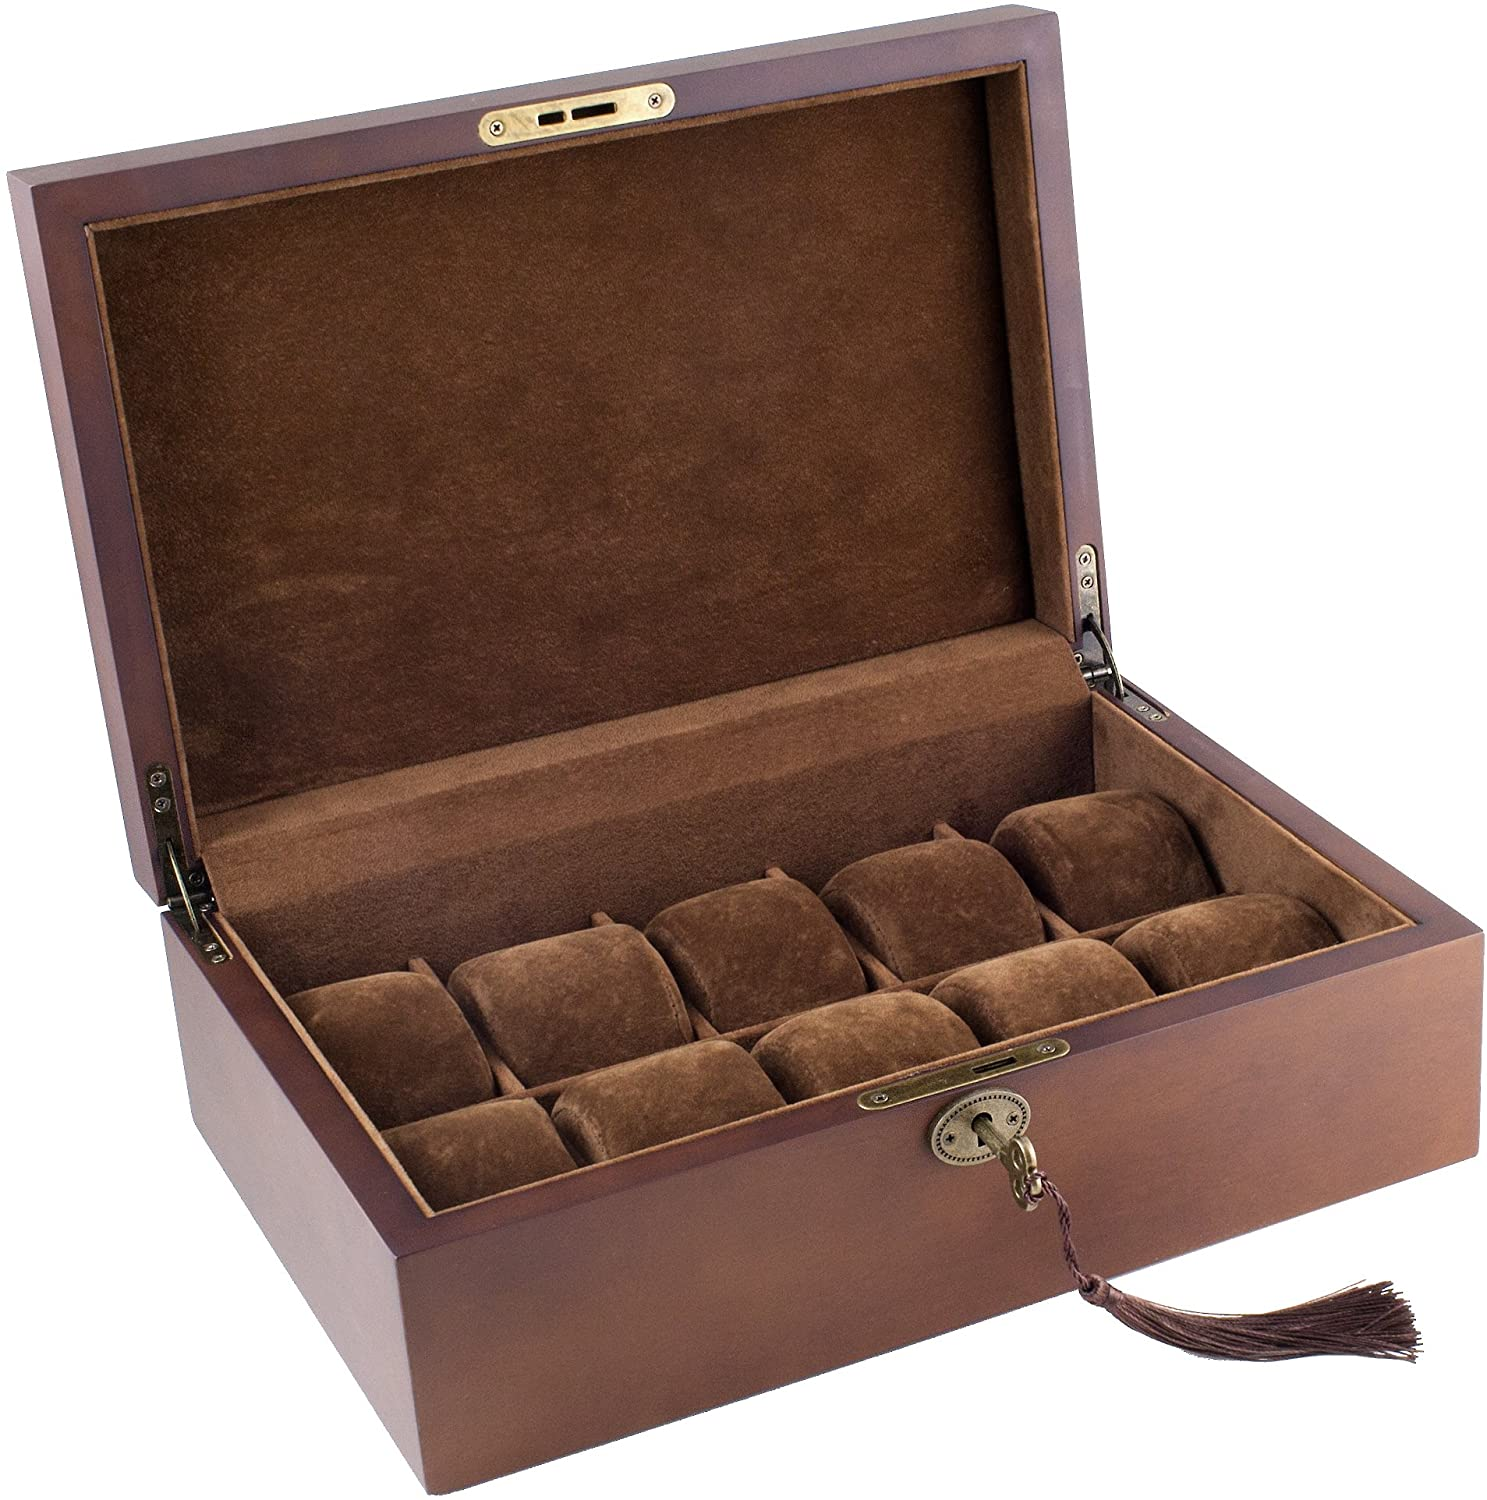 Wood Watch Box Display Storage Case Chest with Solid Top Holds 10 Watches with Adjustable Soft Pillows by Caddy Bay Collection